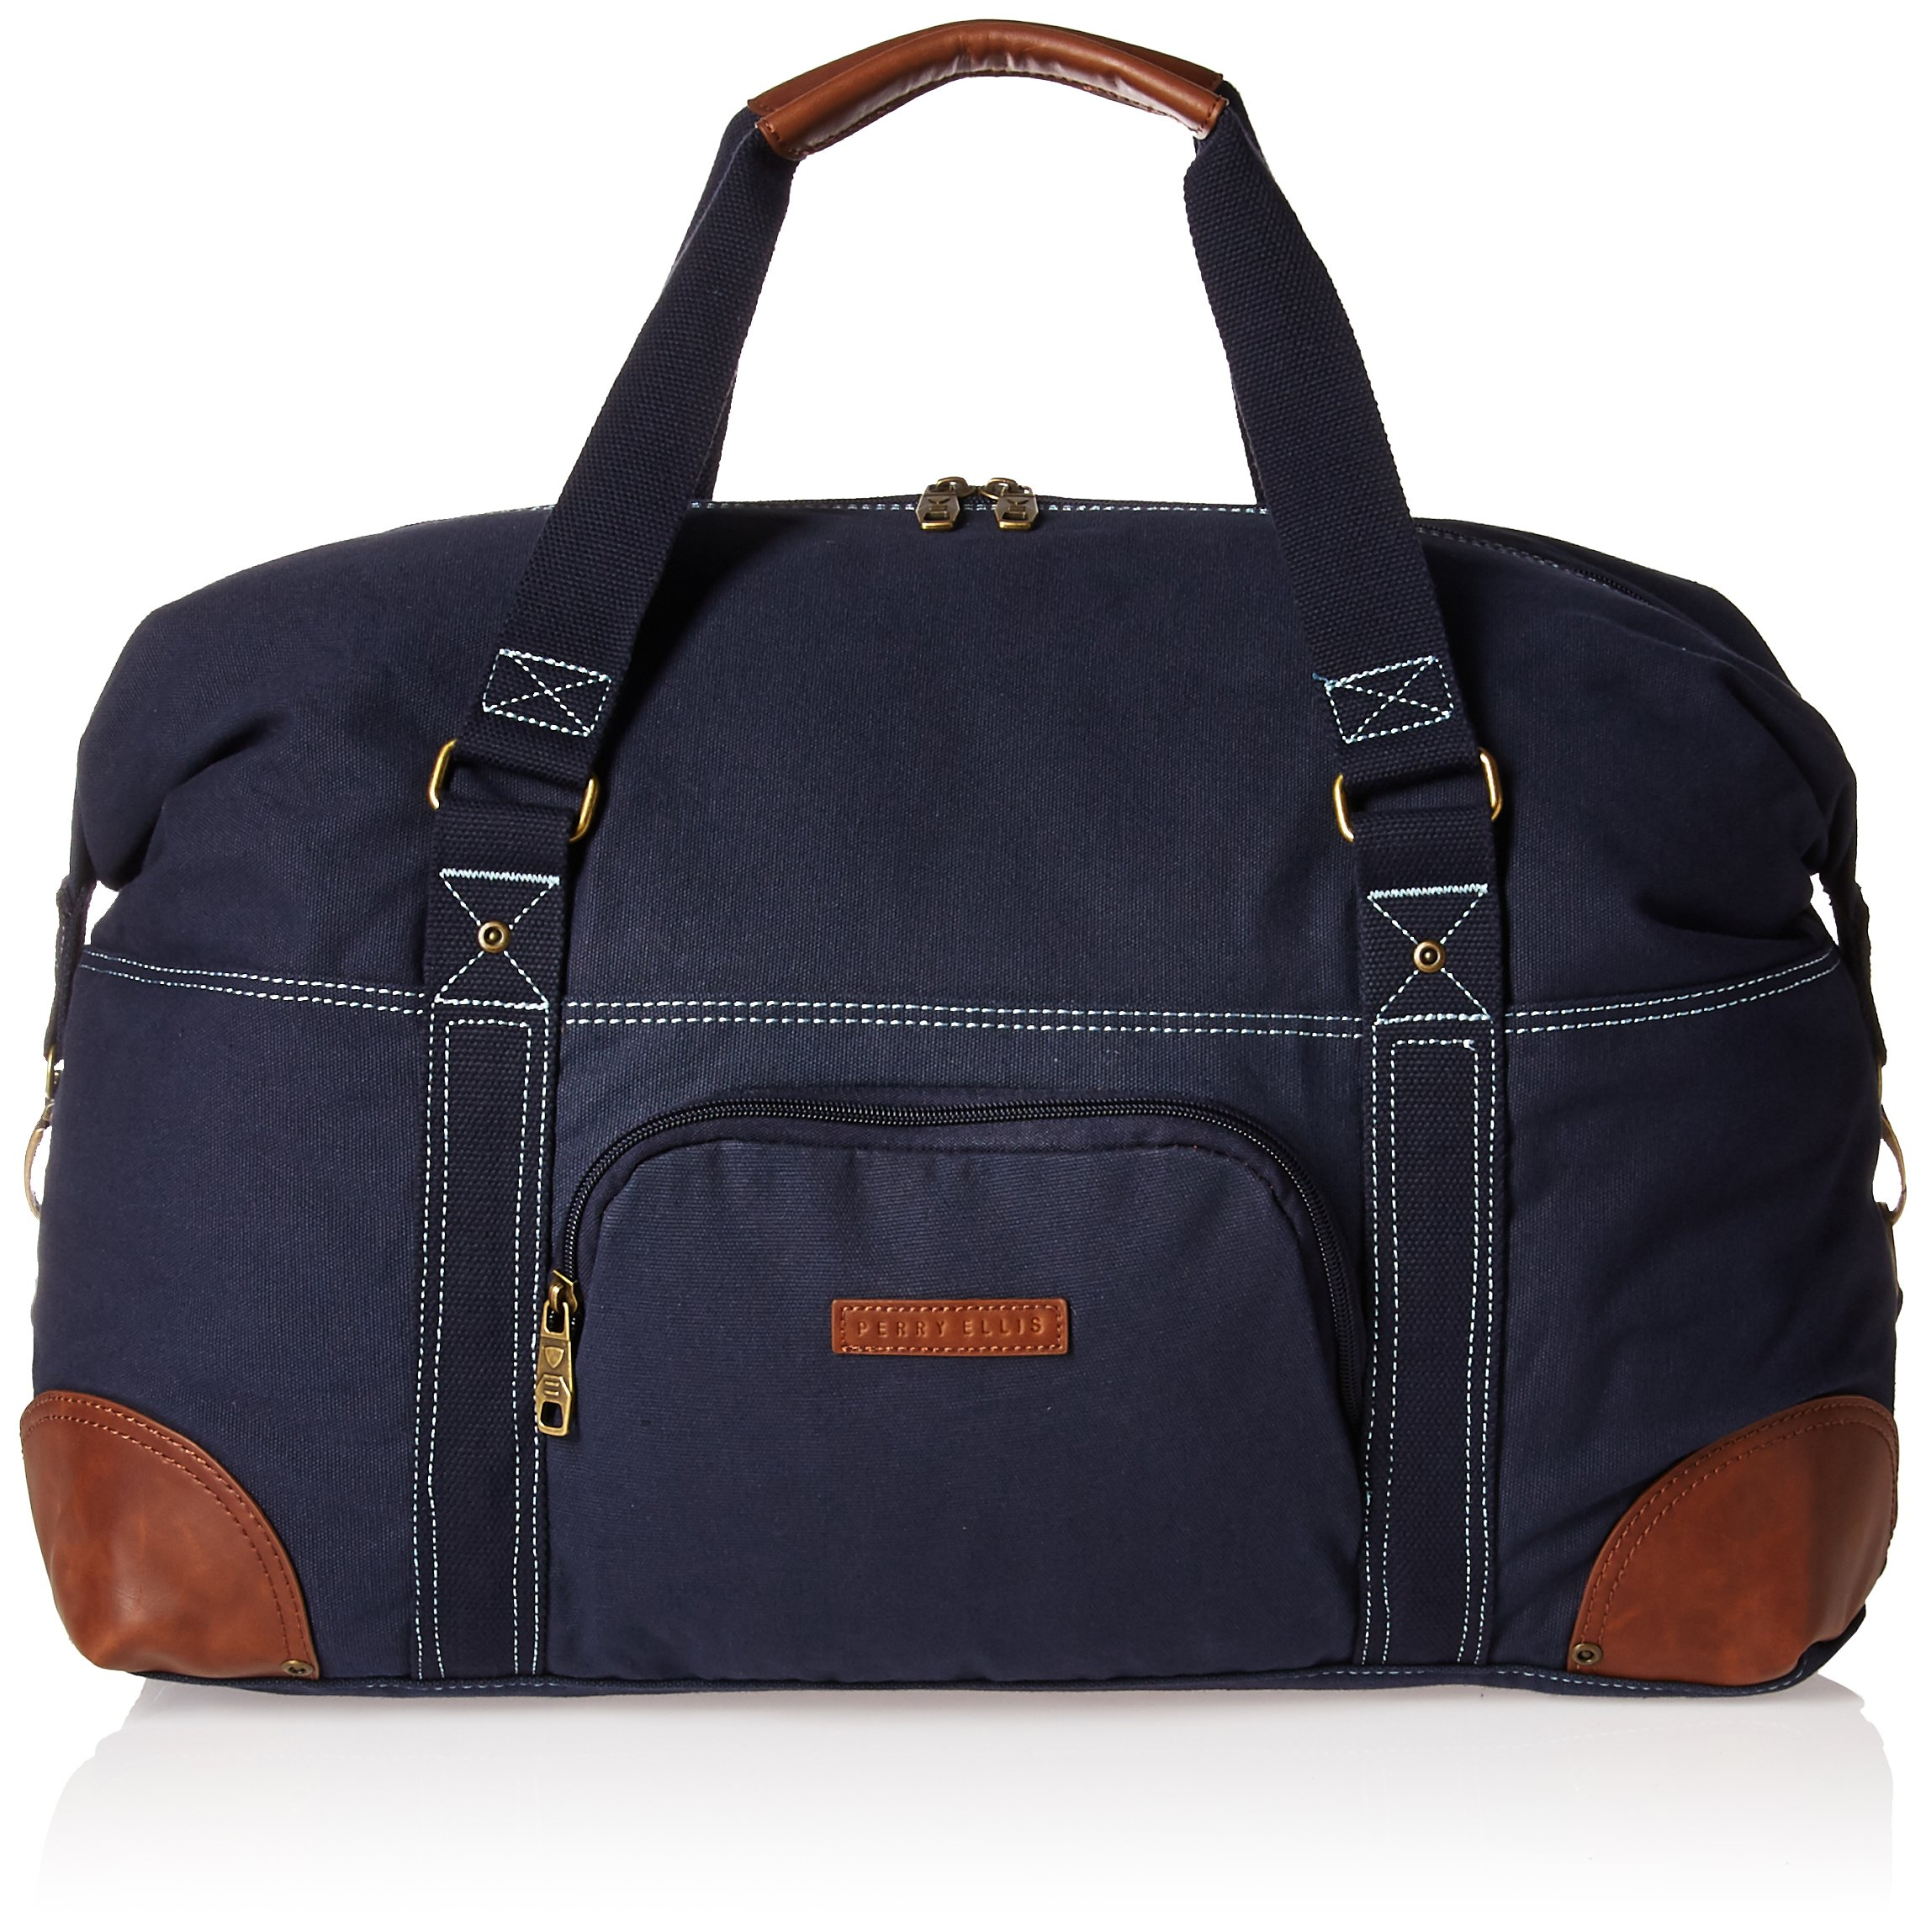 Perry Ellis 22'' Carry Canvas Bag Weekend Duffel, Navy, One Size